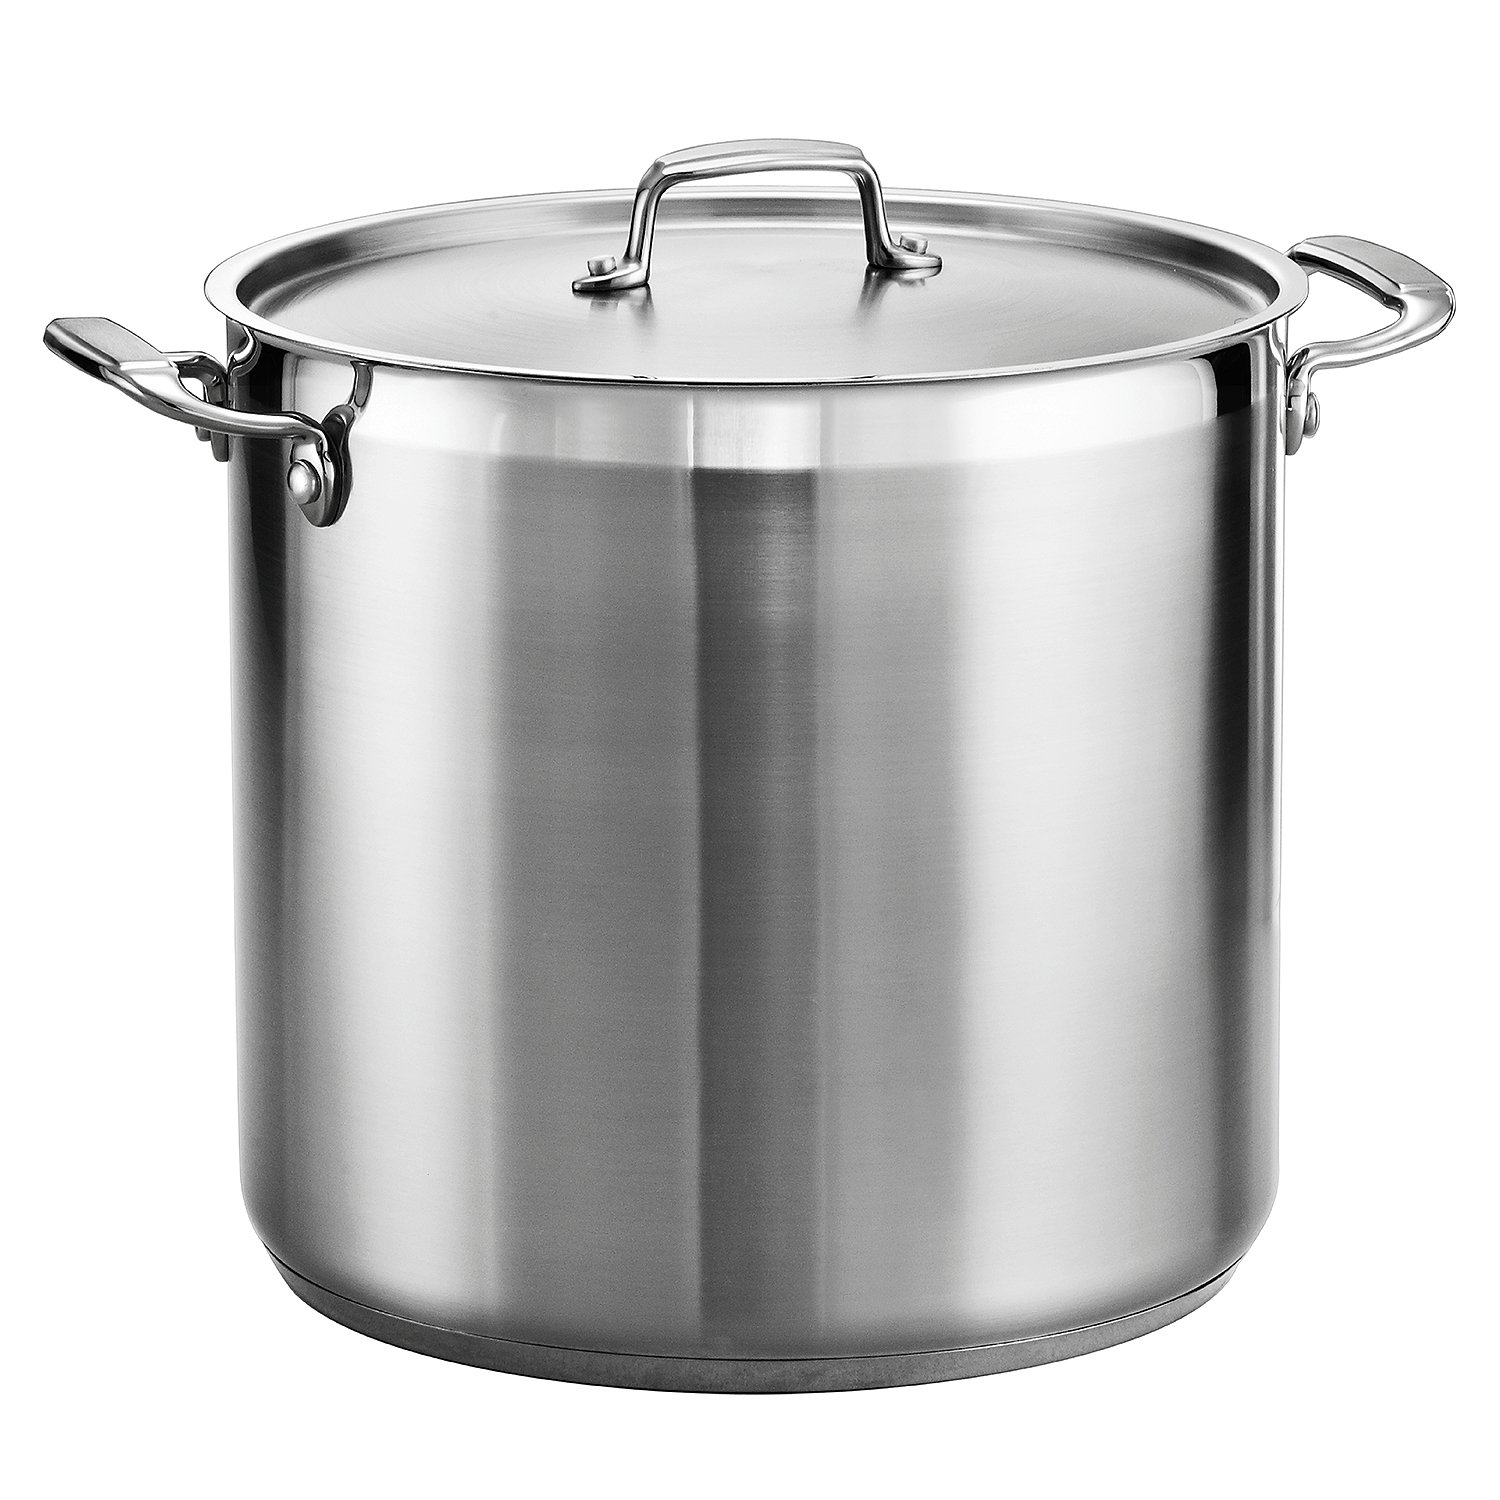 Tramontina 80120/002DS Covered Stock Pot, 20-Quart Stainless Steel